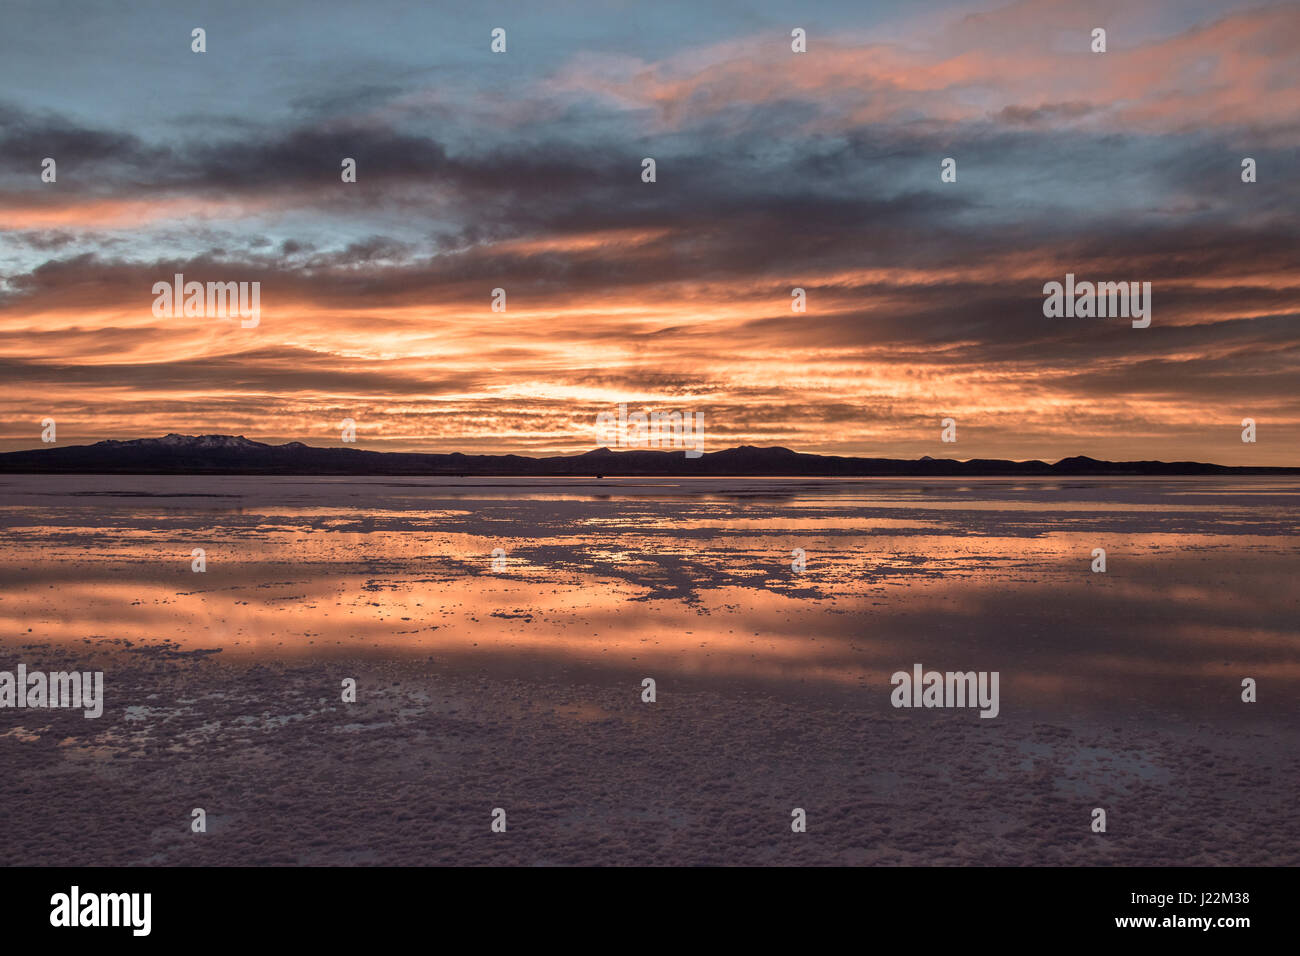 Sunrise at Salar de Uyuni salt flat - Potosi Department, Bolivia - Stock Image